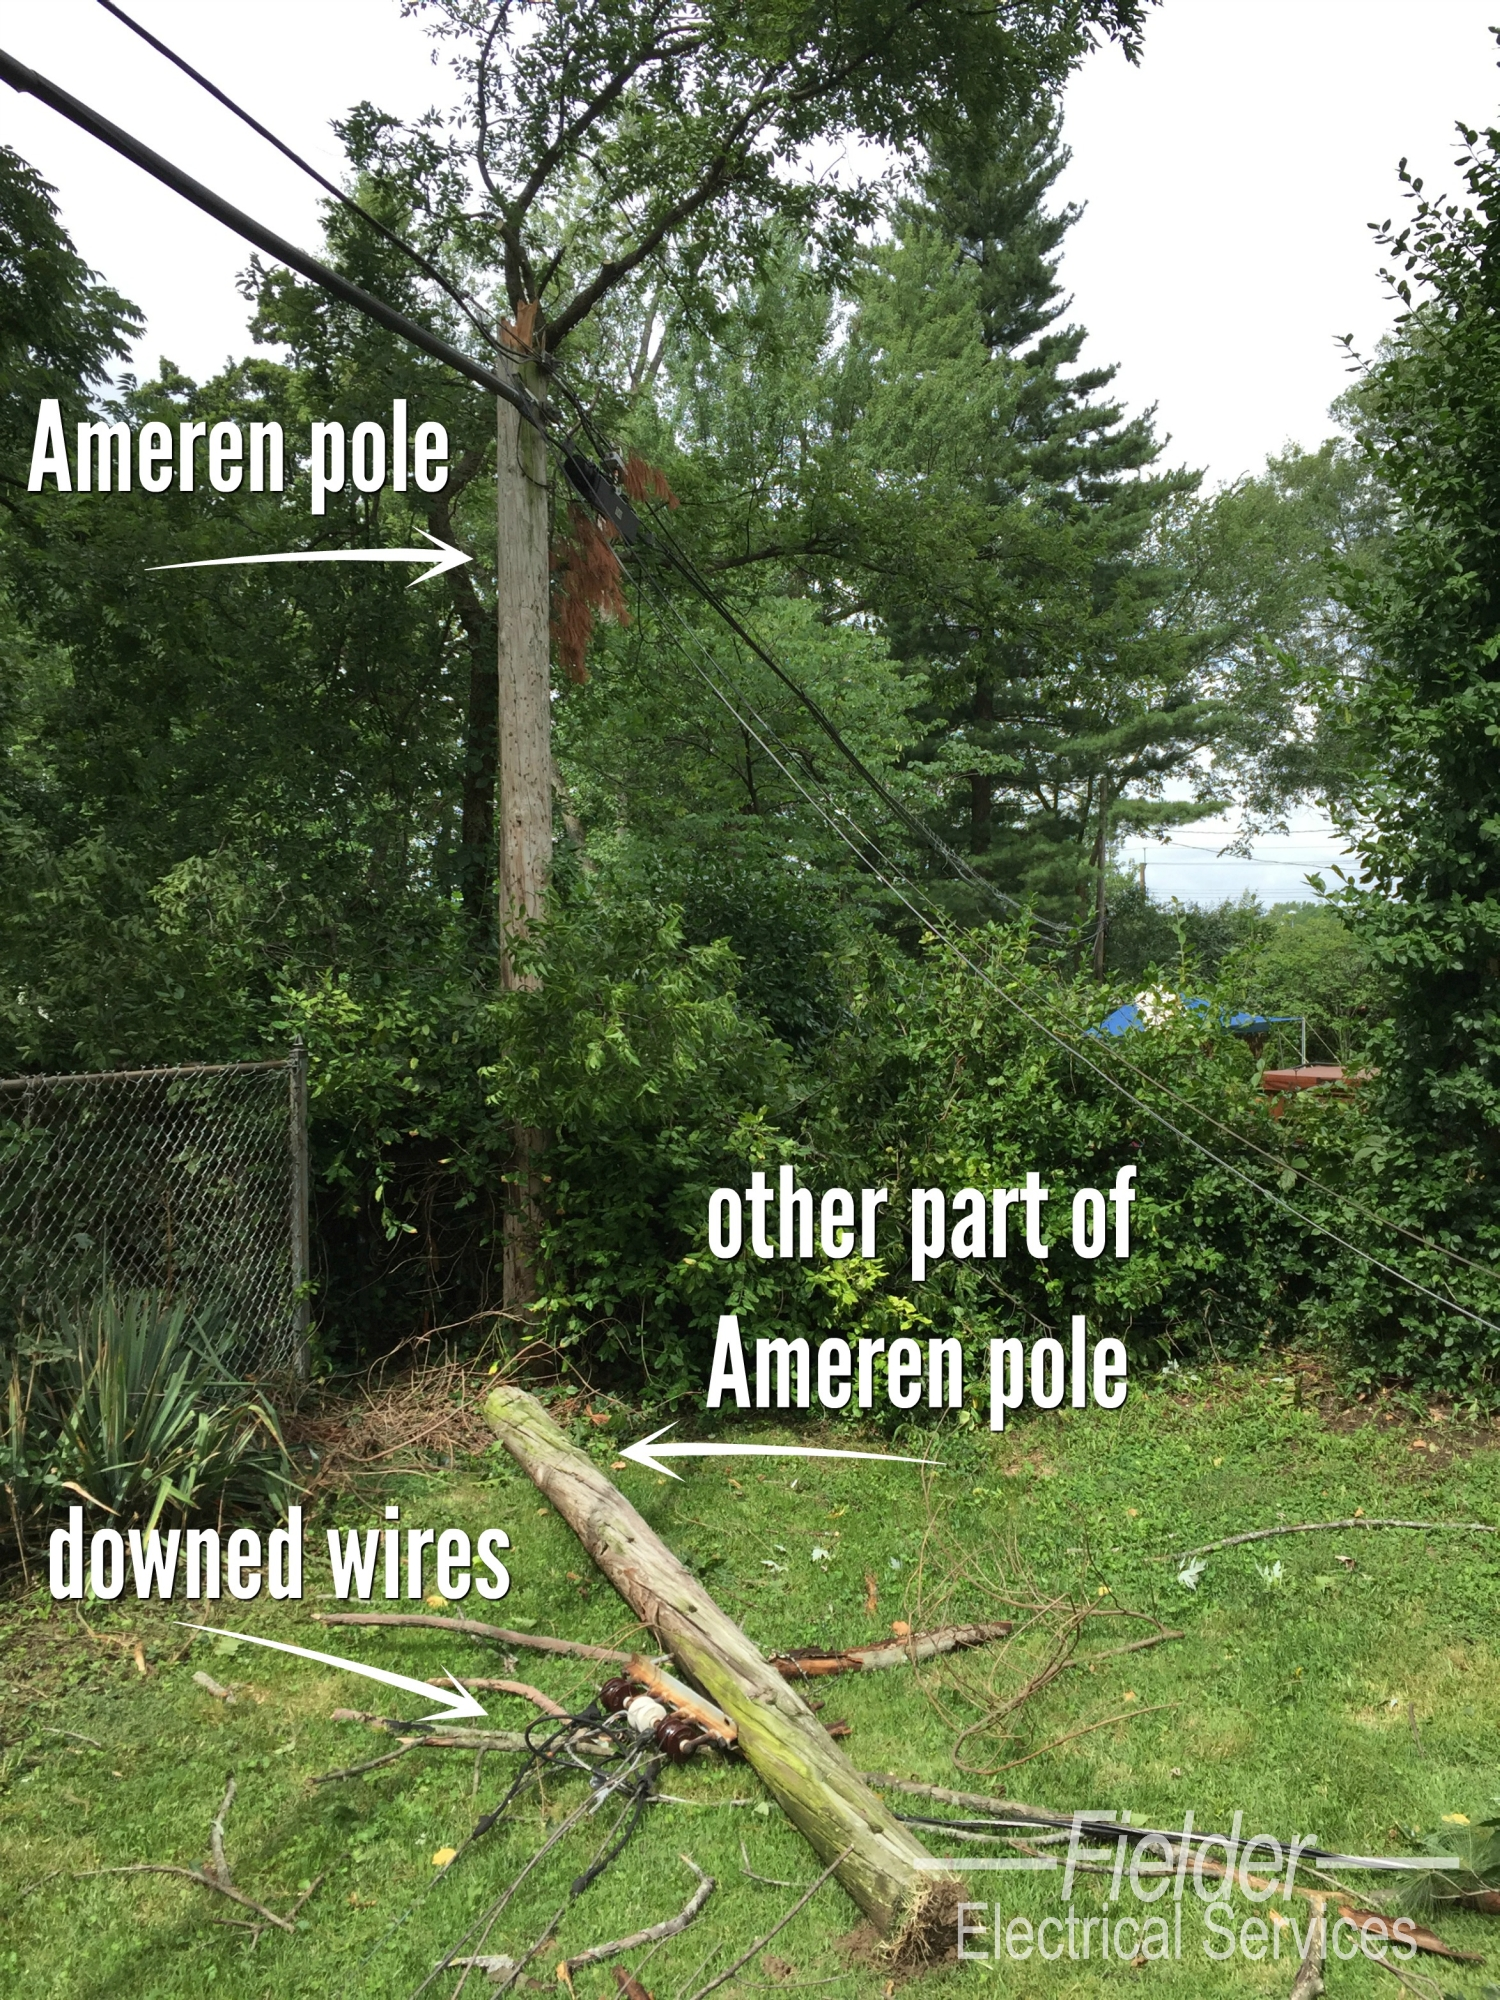 Amerenue Electric Meter Box Diagram Wiring Residential Electrical Repairs For Storm Damage Fielder Services A Amerens Lines Are